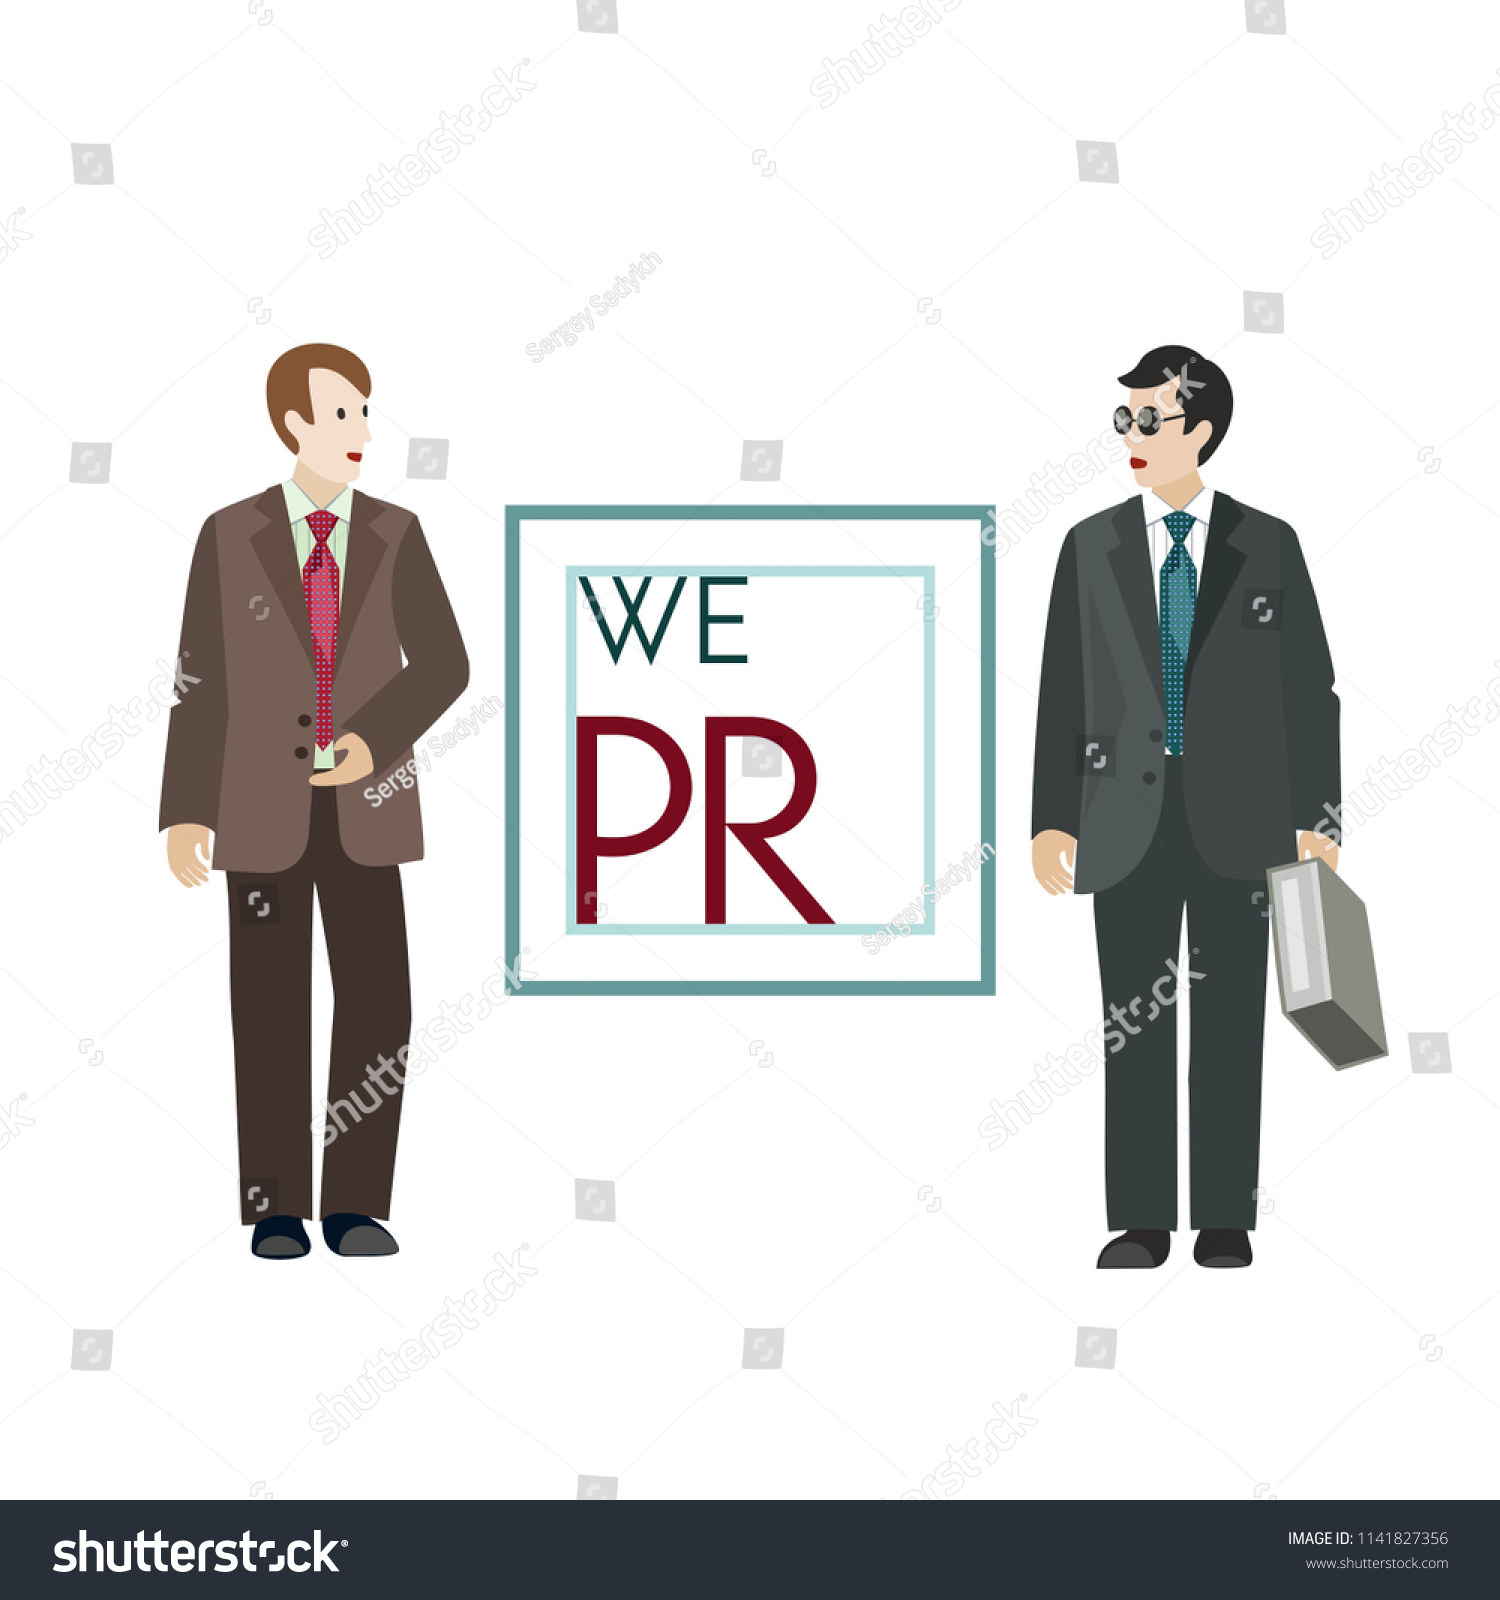 Day Pr Specialist Man Glasses Business Stock Vector Royalty Free 1141827356